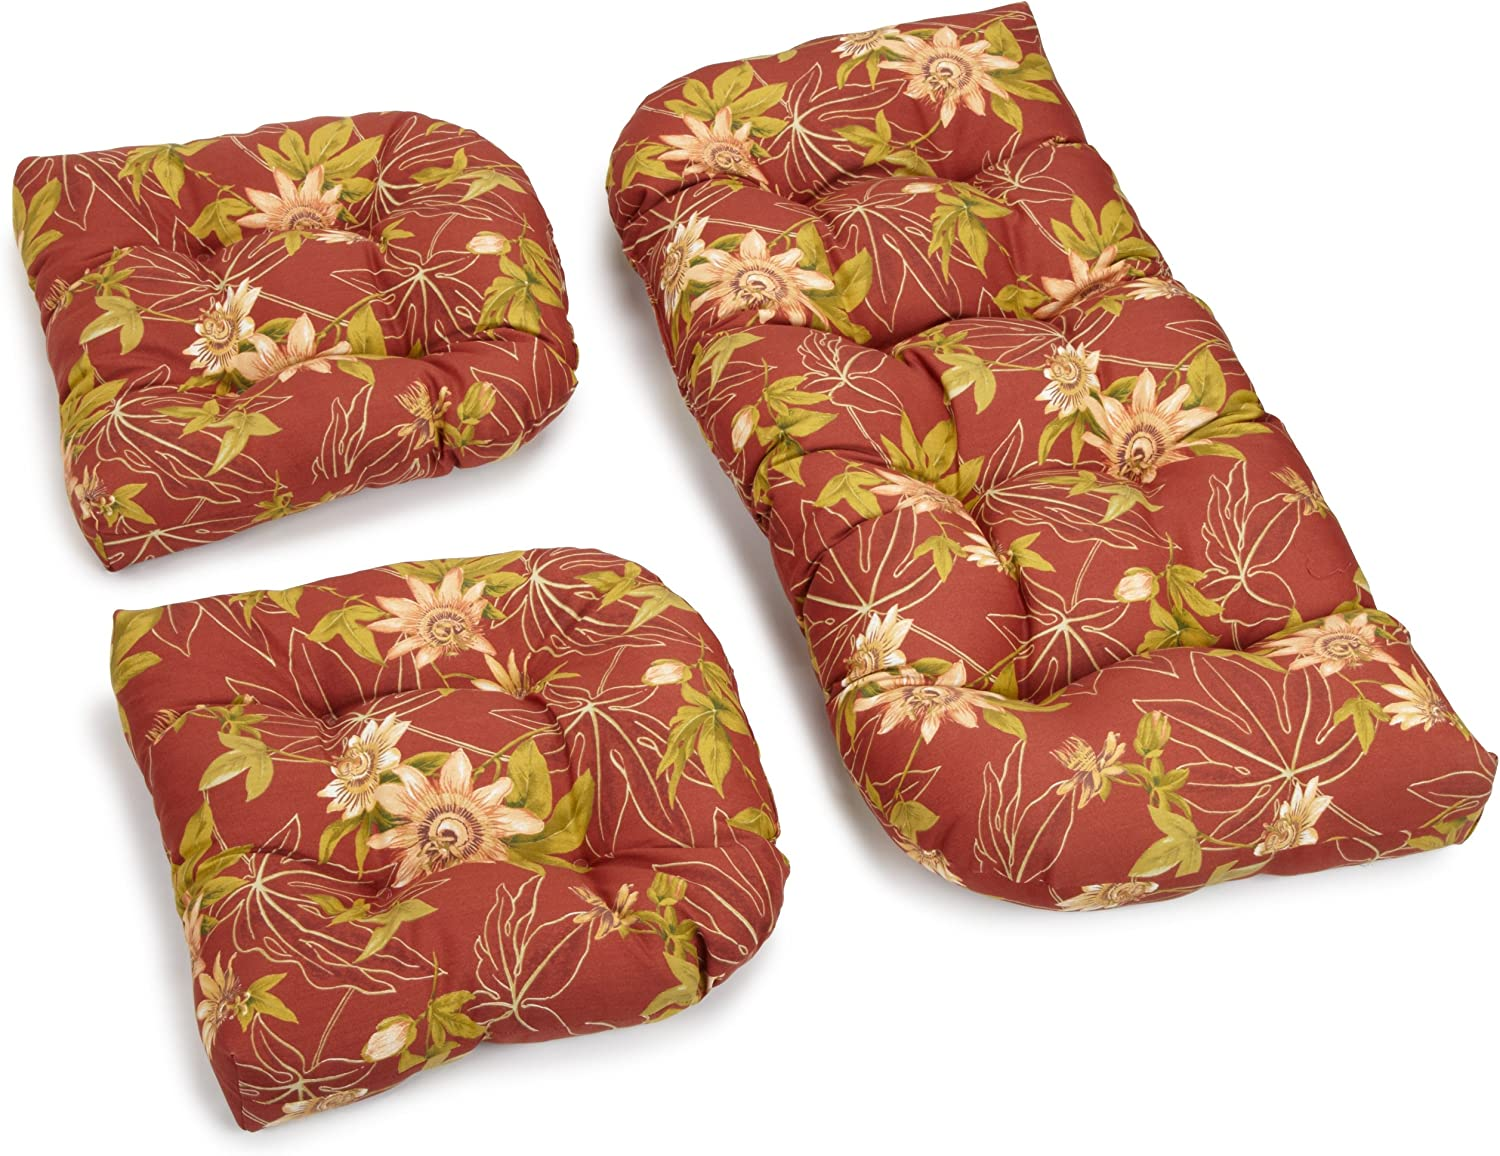 Blazing Needles Outdoor Spun Poly All Weather UV Resistant Settee Group Cushions, Passion Ruby, Set of 3